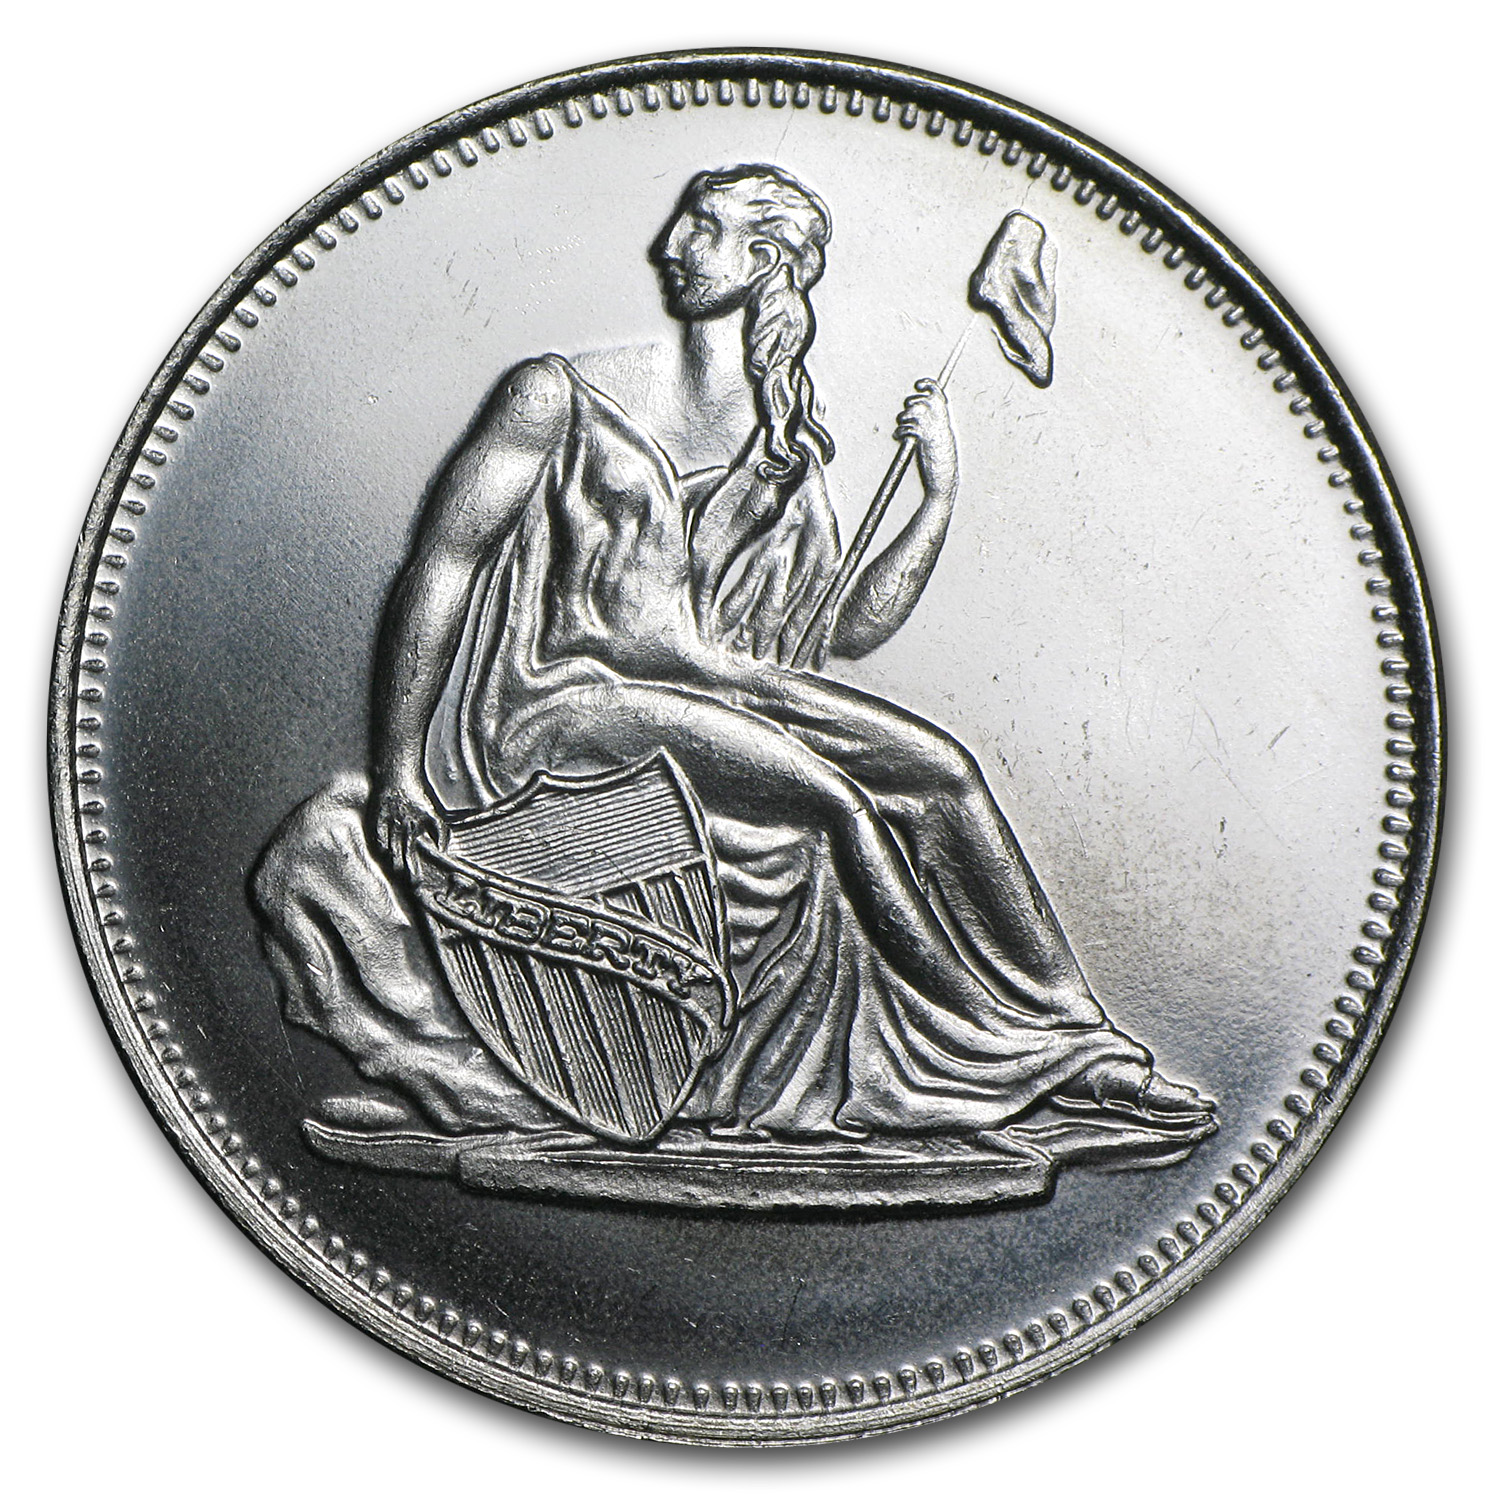 1 oz Silver Rounds - Seated Liberty Dollar (Replica)